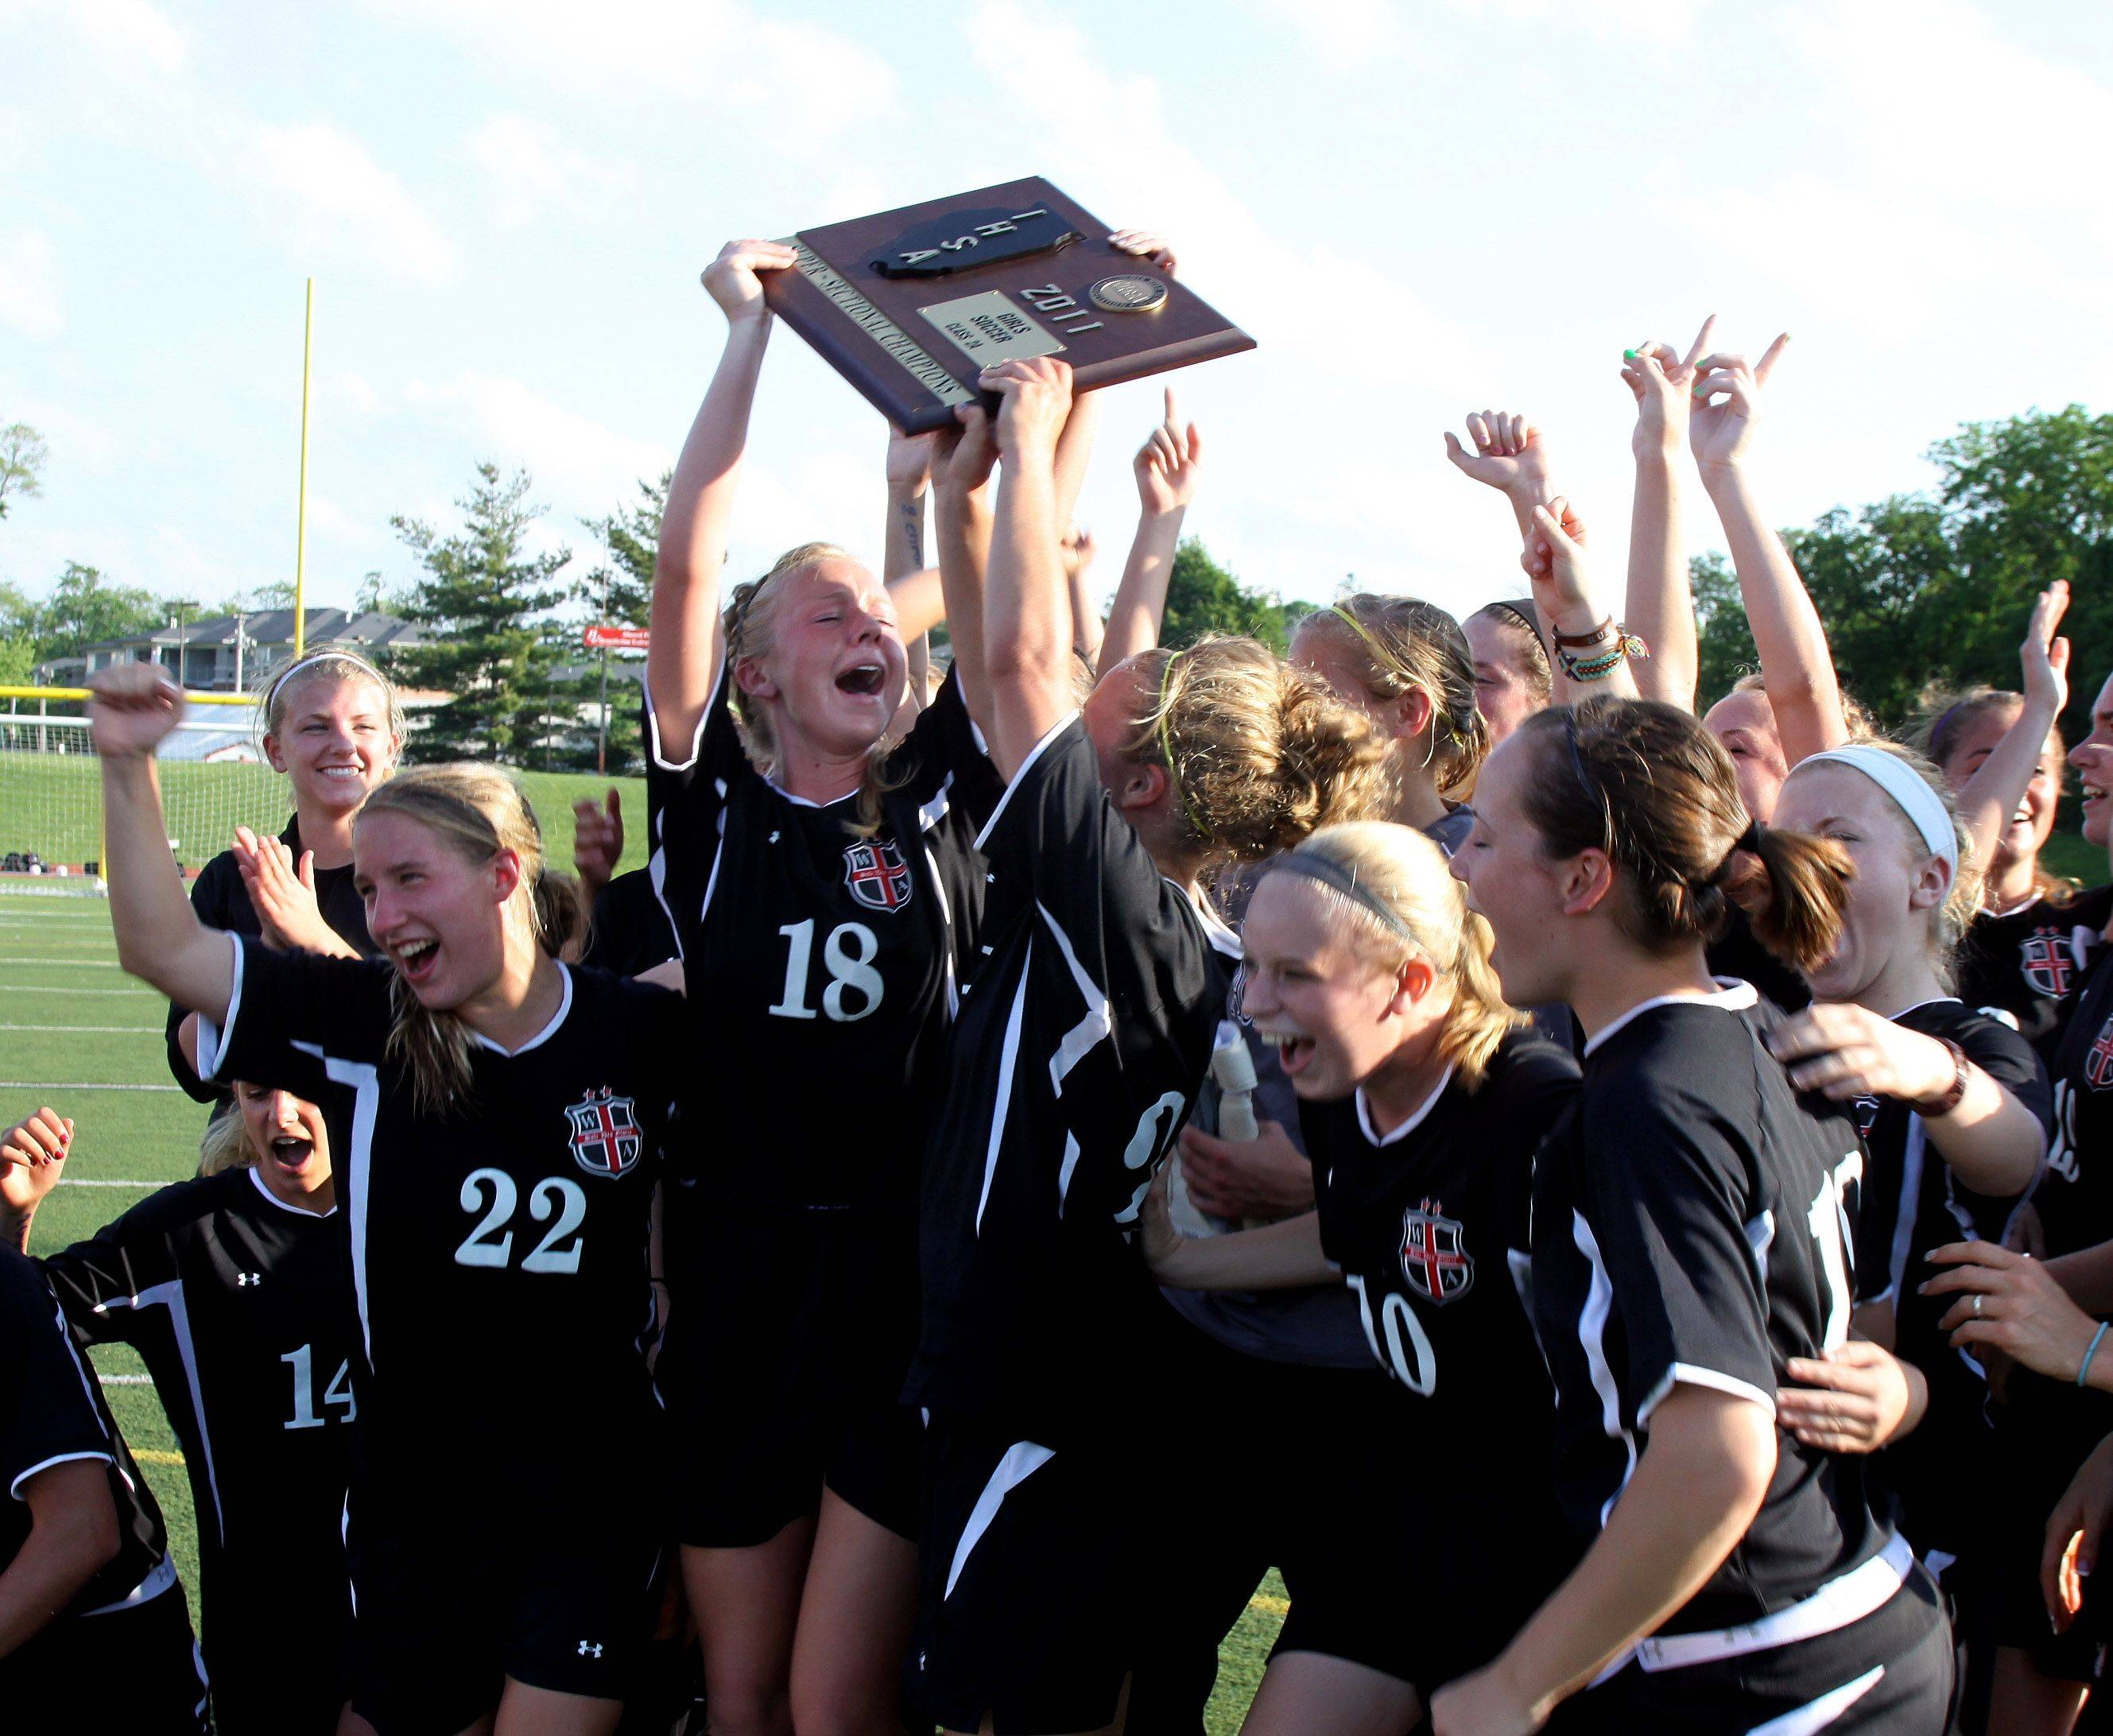 Wheaton Academy celebrates their win over St. Francis in the Class 2A Benedictine supersectional girls soccer match Tuesday in Lisle.